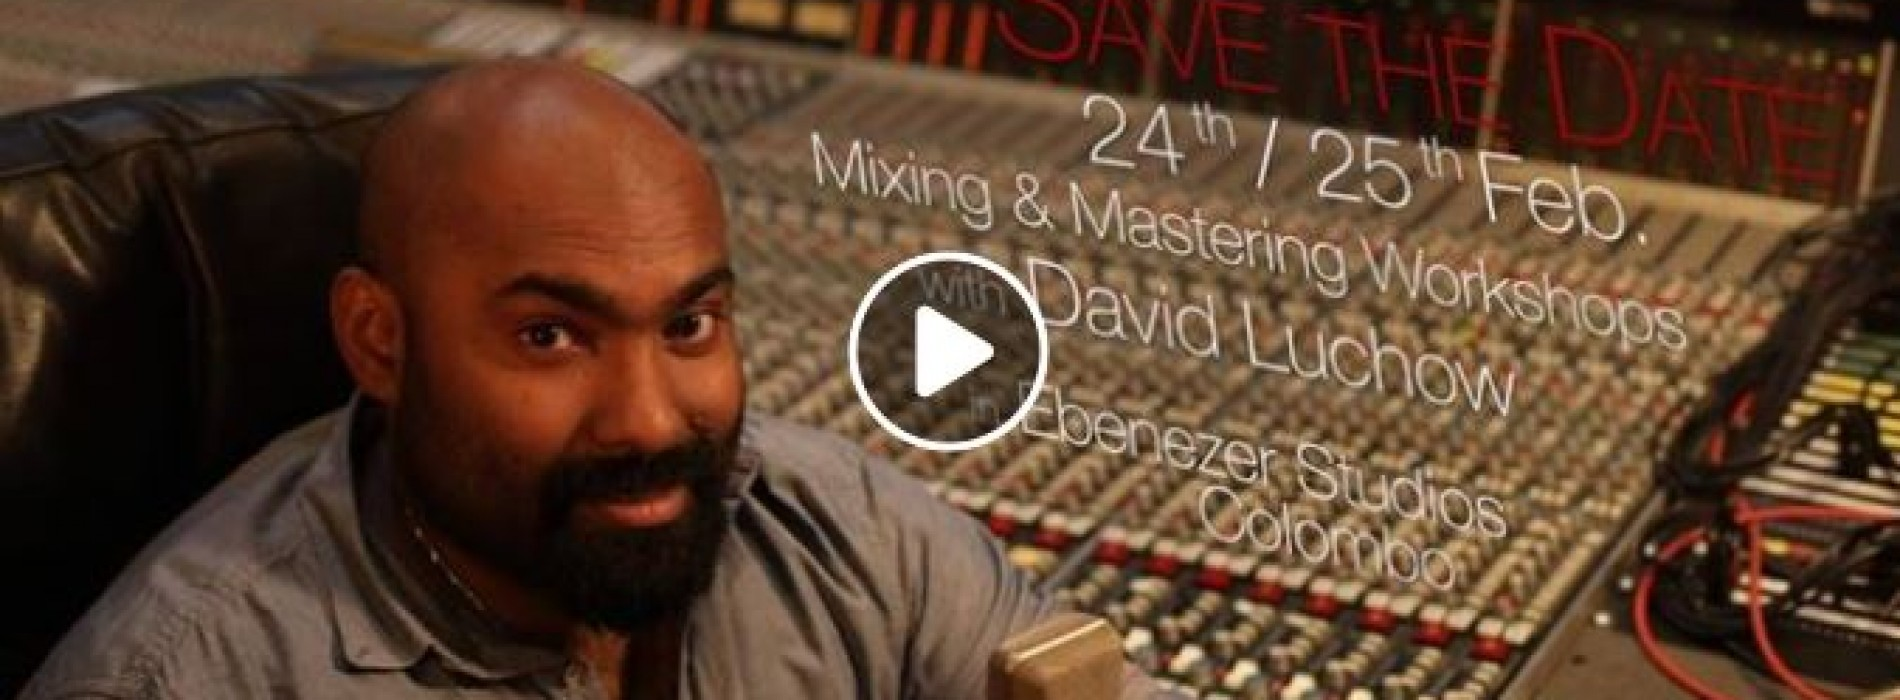 David Luchow Has A Mixing & Mastering Workshop